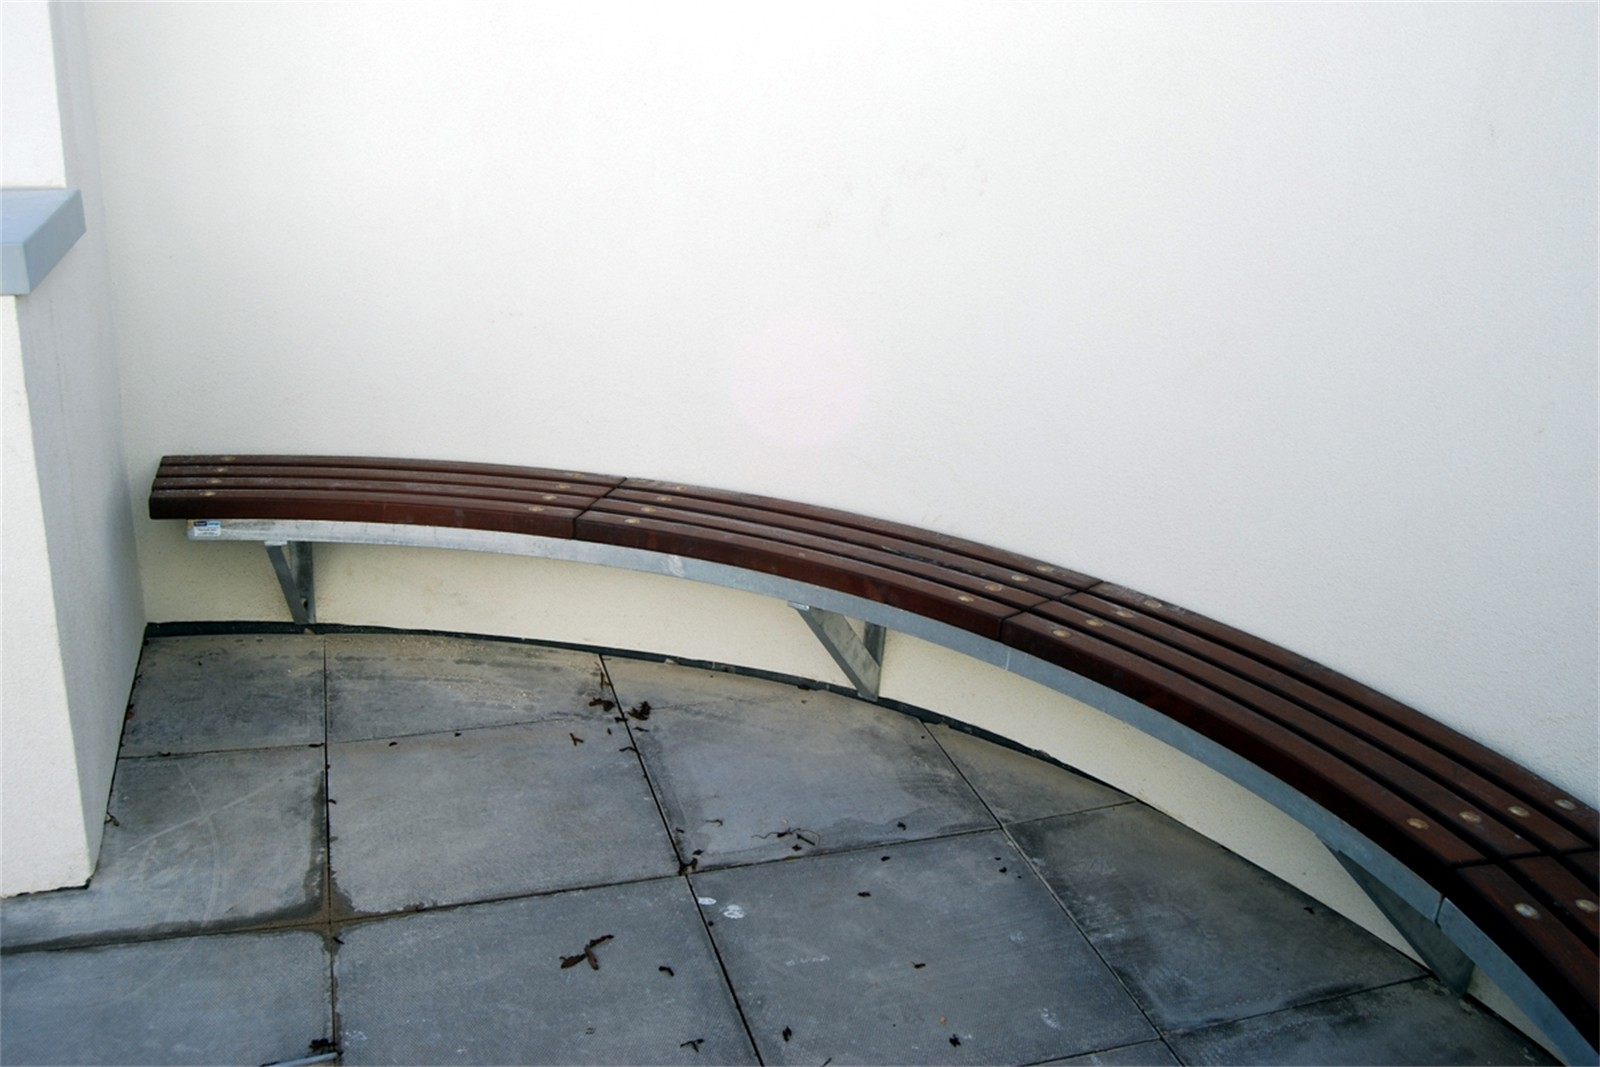 76sbe13 - Bexley long wall mounted curved bench